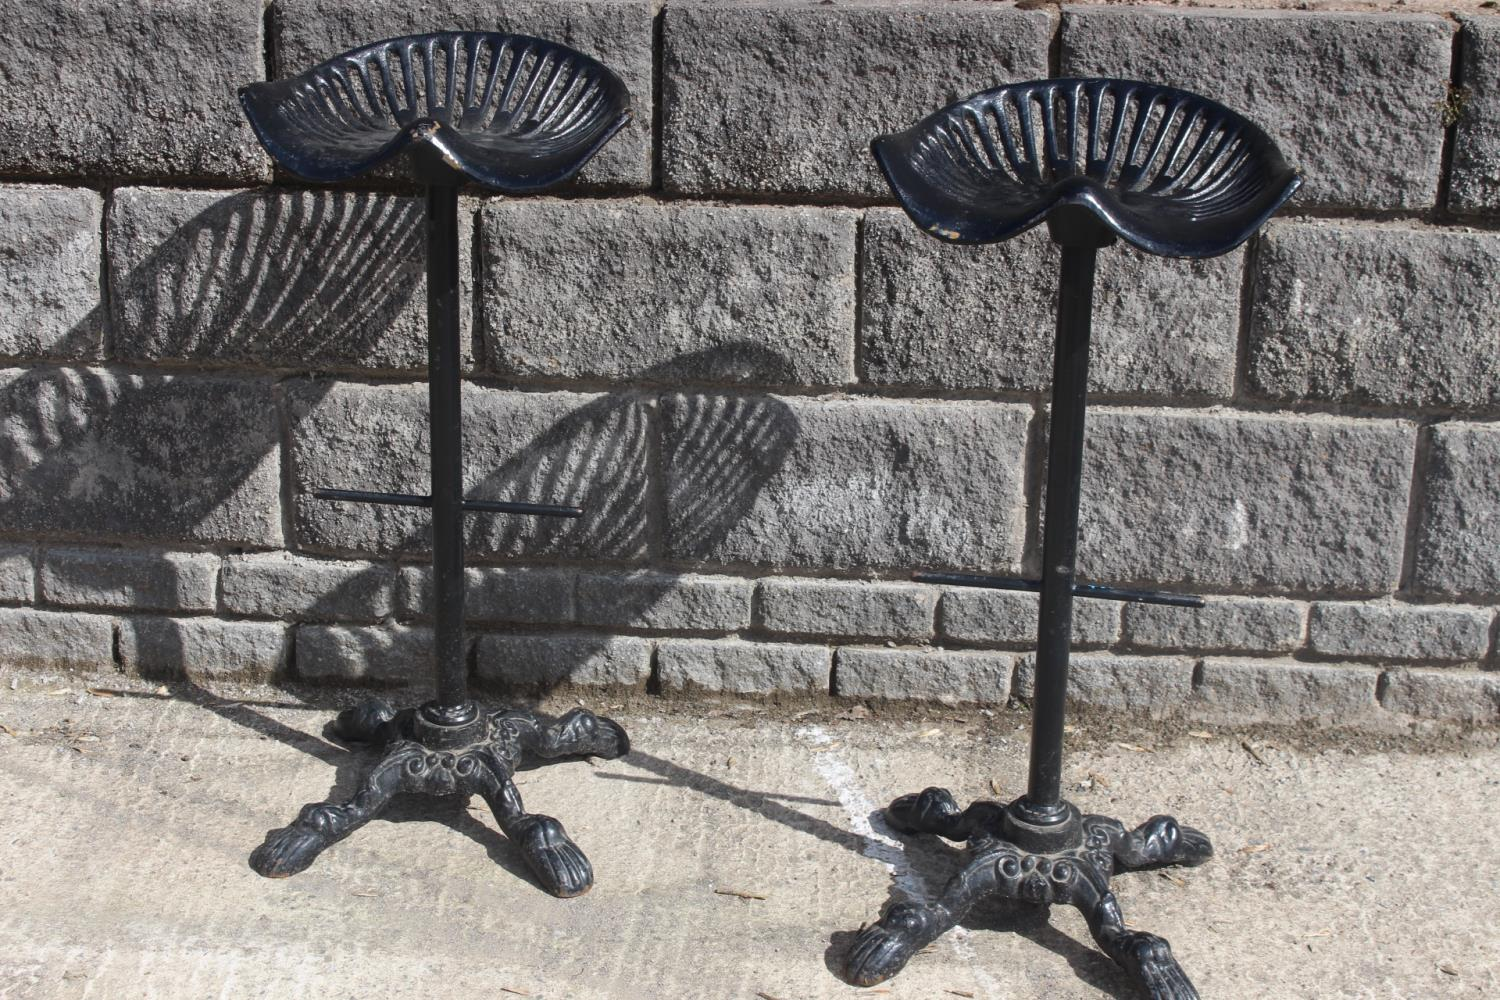 Pair of cast iron bar stools - Image 2 of 2